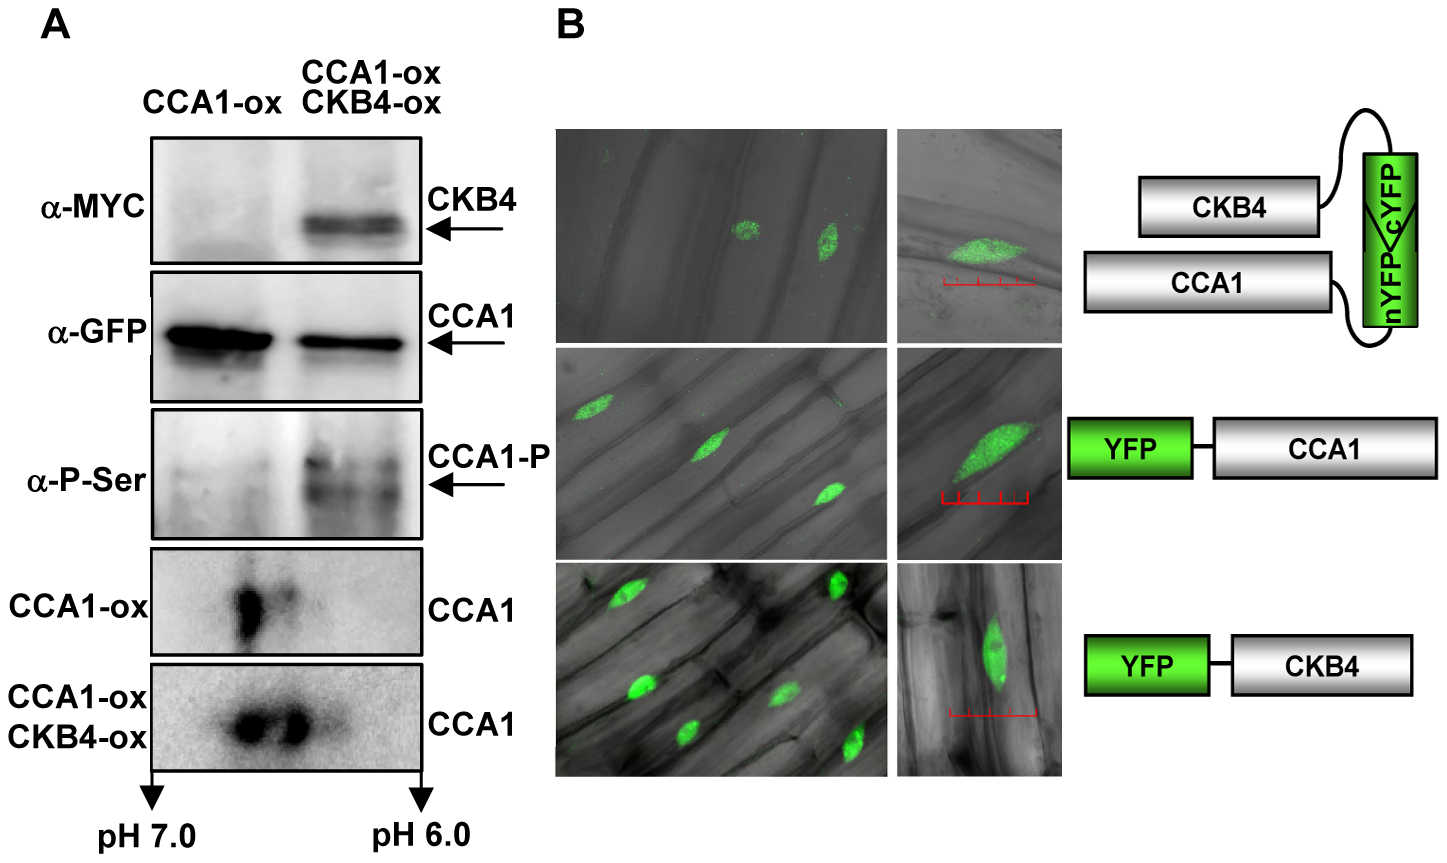 Molecular interaction of CCA1 and CKB4.